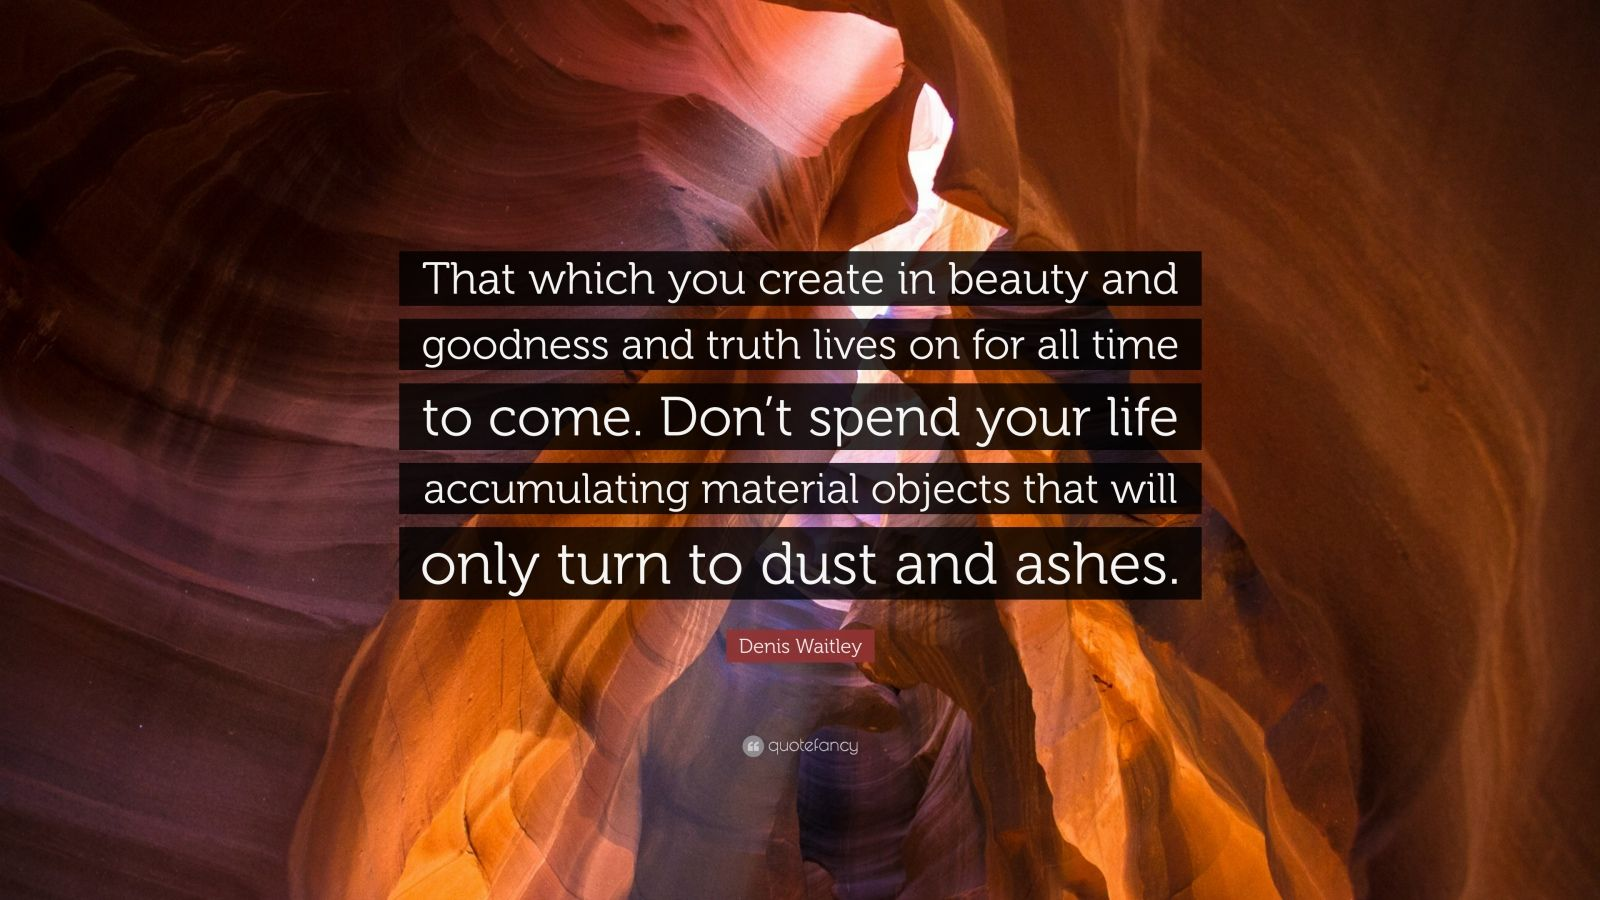 """Denis Waitley Quote: """"That which you create in beauty and goodness and truth lives on for all time to come. Don't spend your life accumulating material objects that will only turn to dust and ashes."""""""